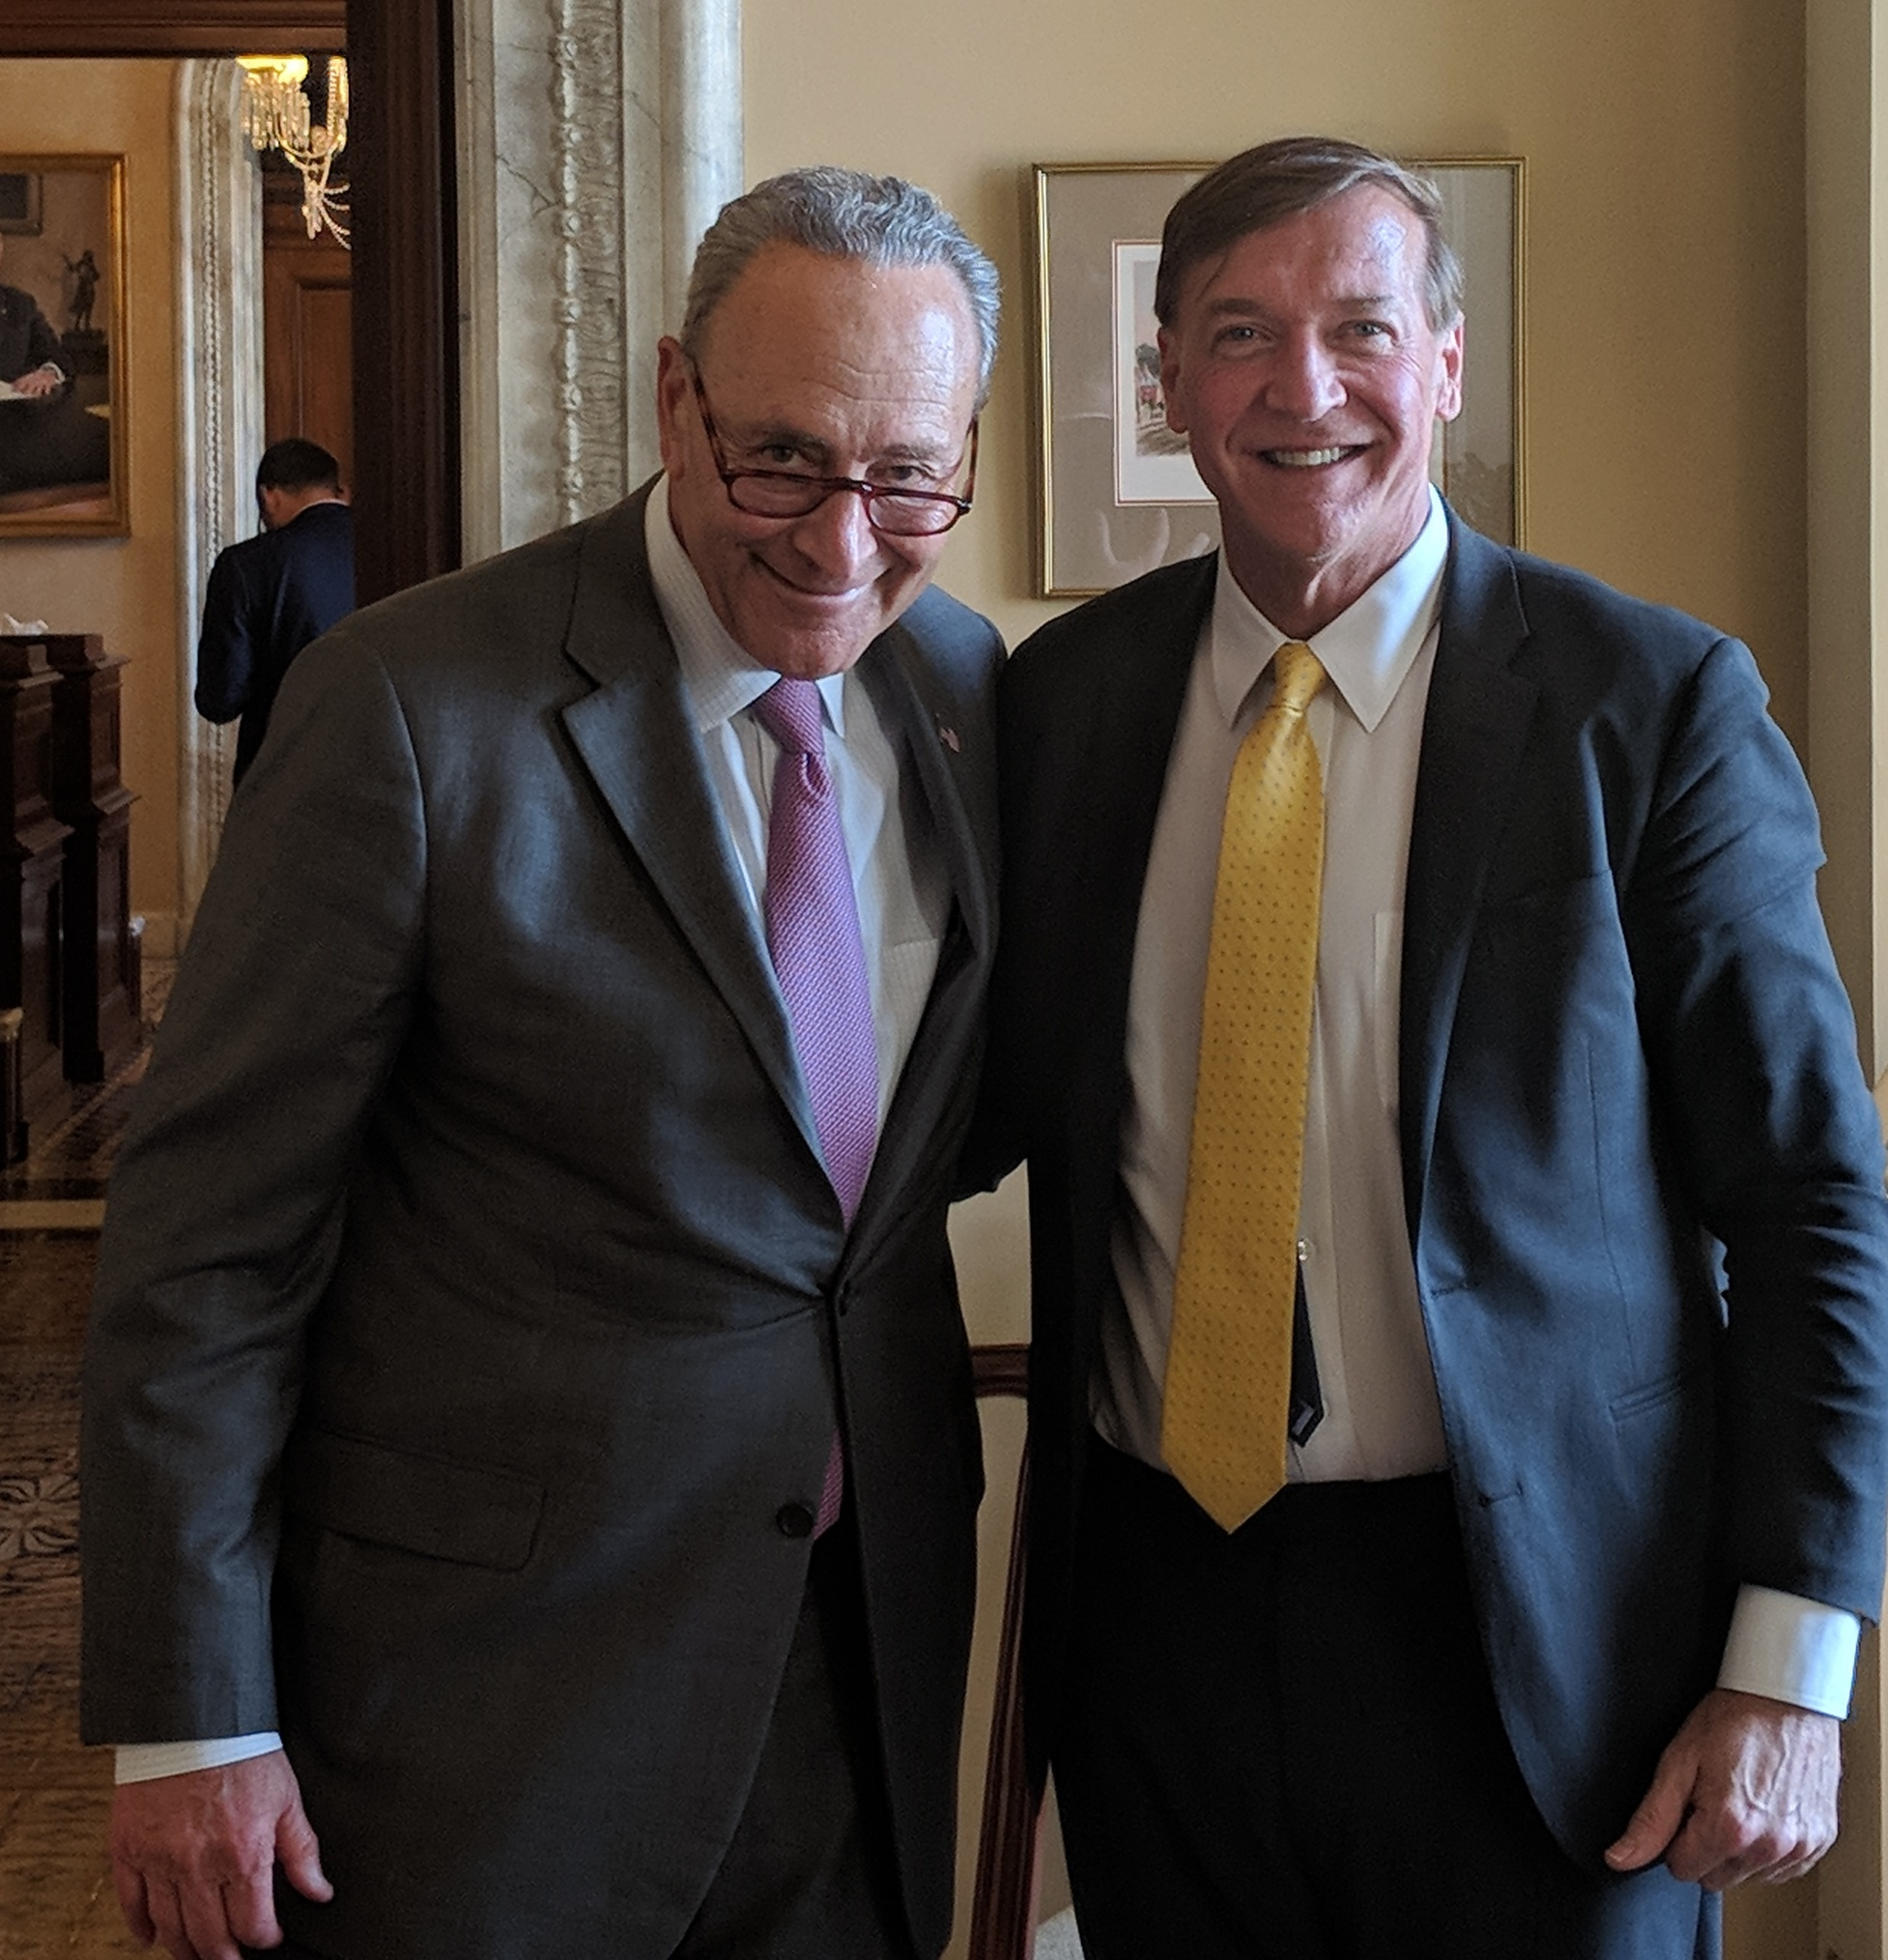 Schumer and pres stanley may 2018 meeting